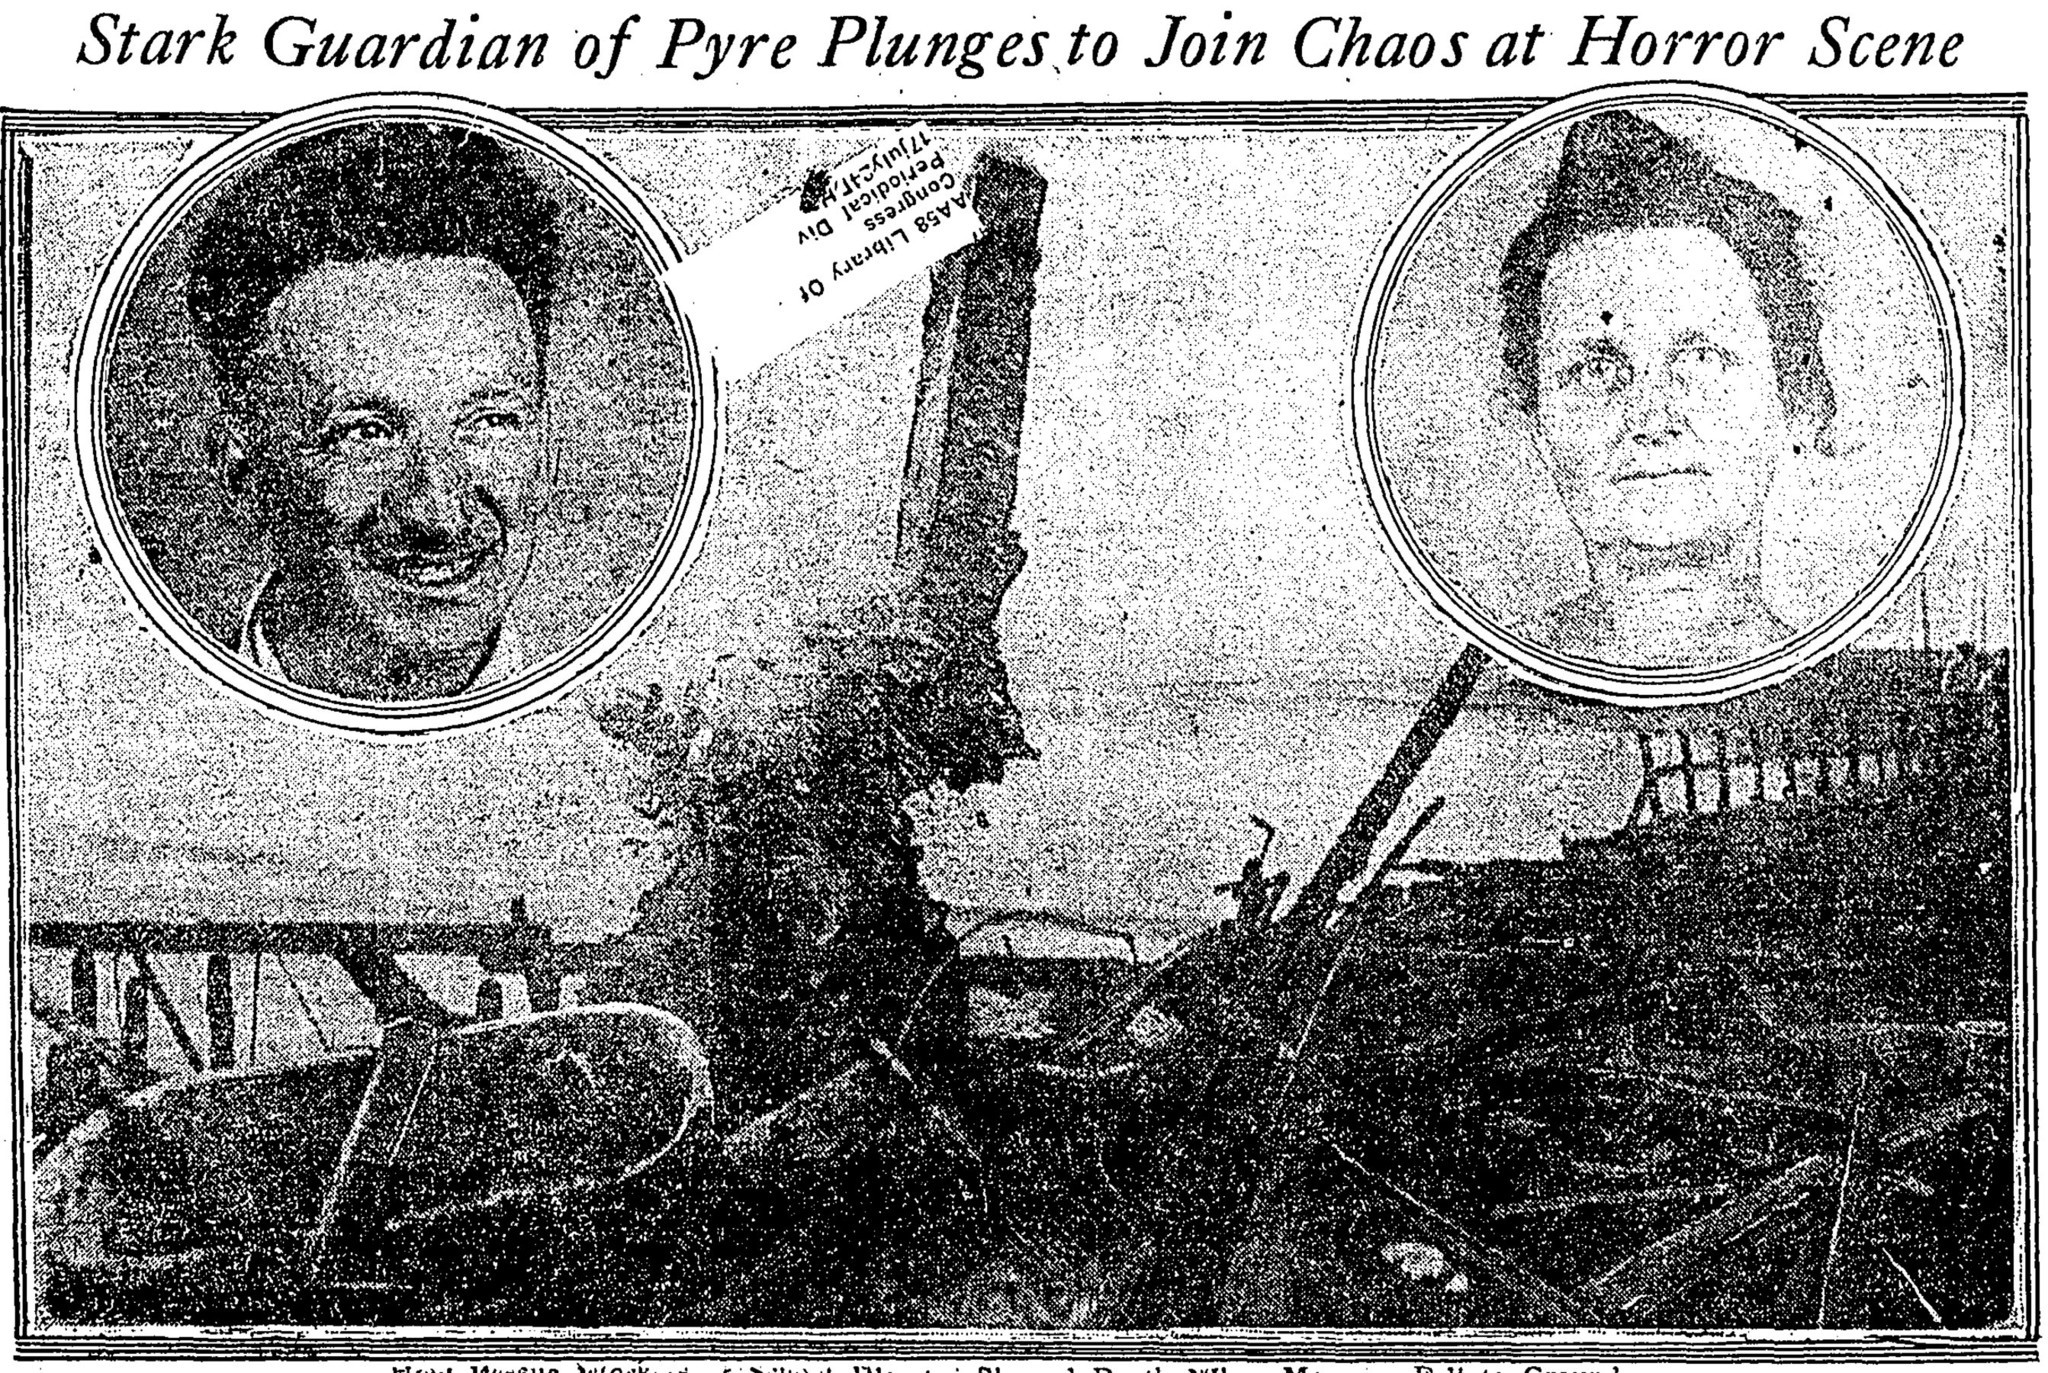 June 2, 1924: Graphic from the June 2, 1924, Los Angeles Times showing burned out remains of the Hop